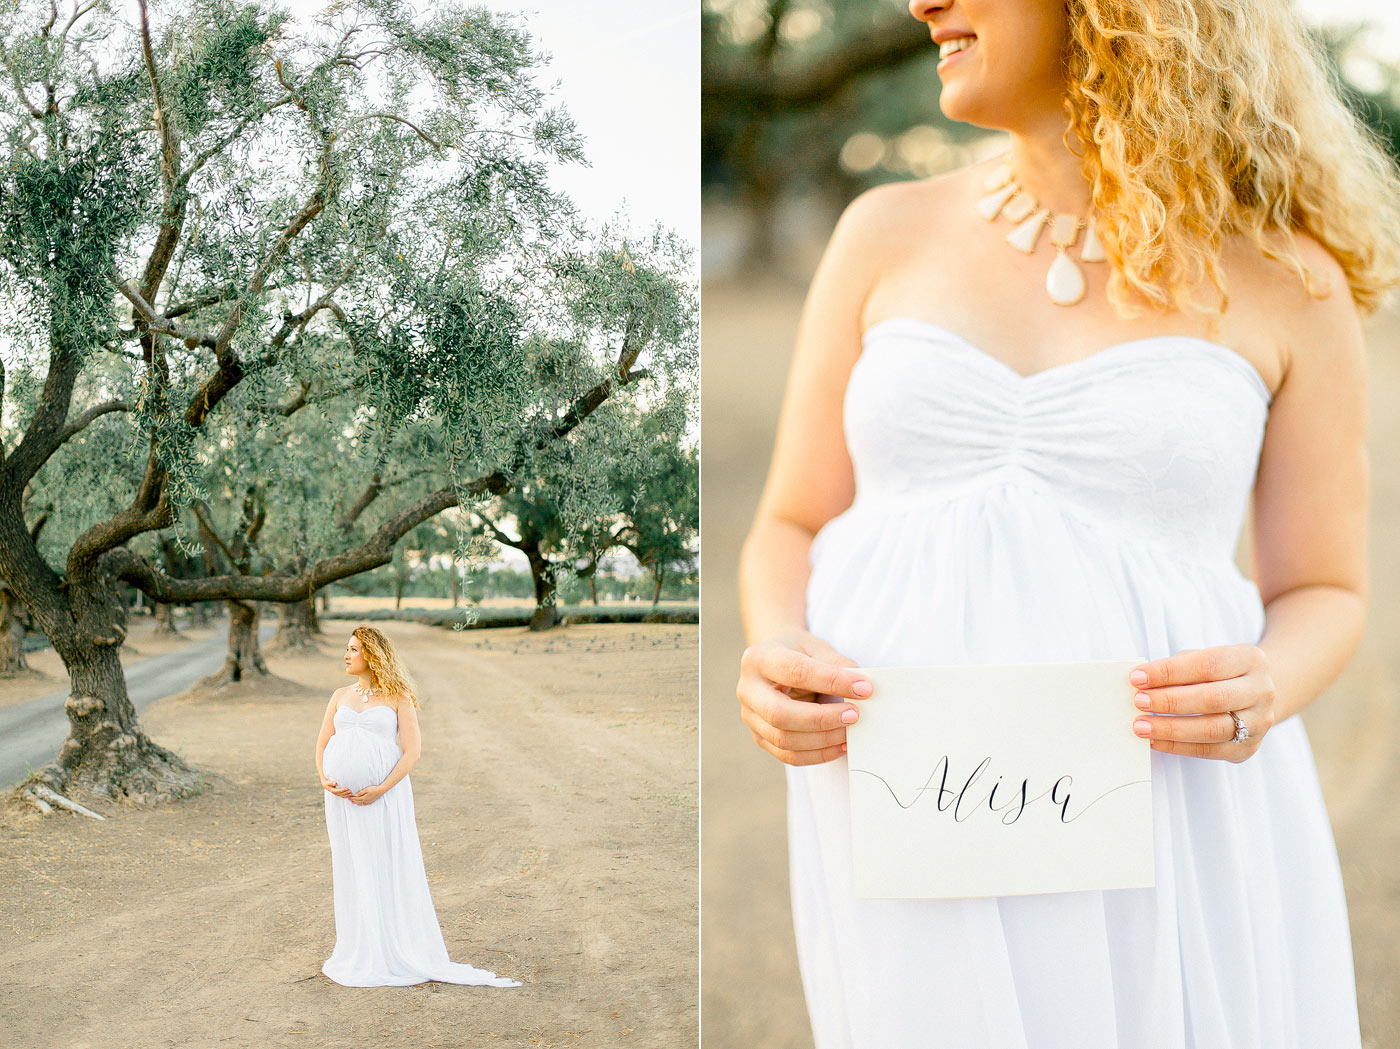 Clairmont Farms Maternity Photos